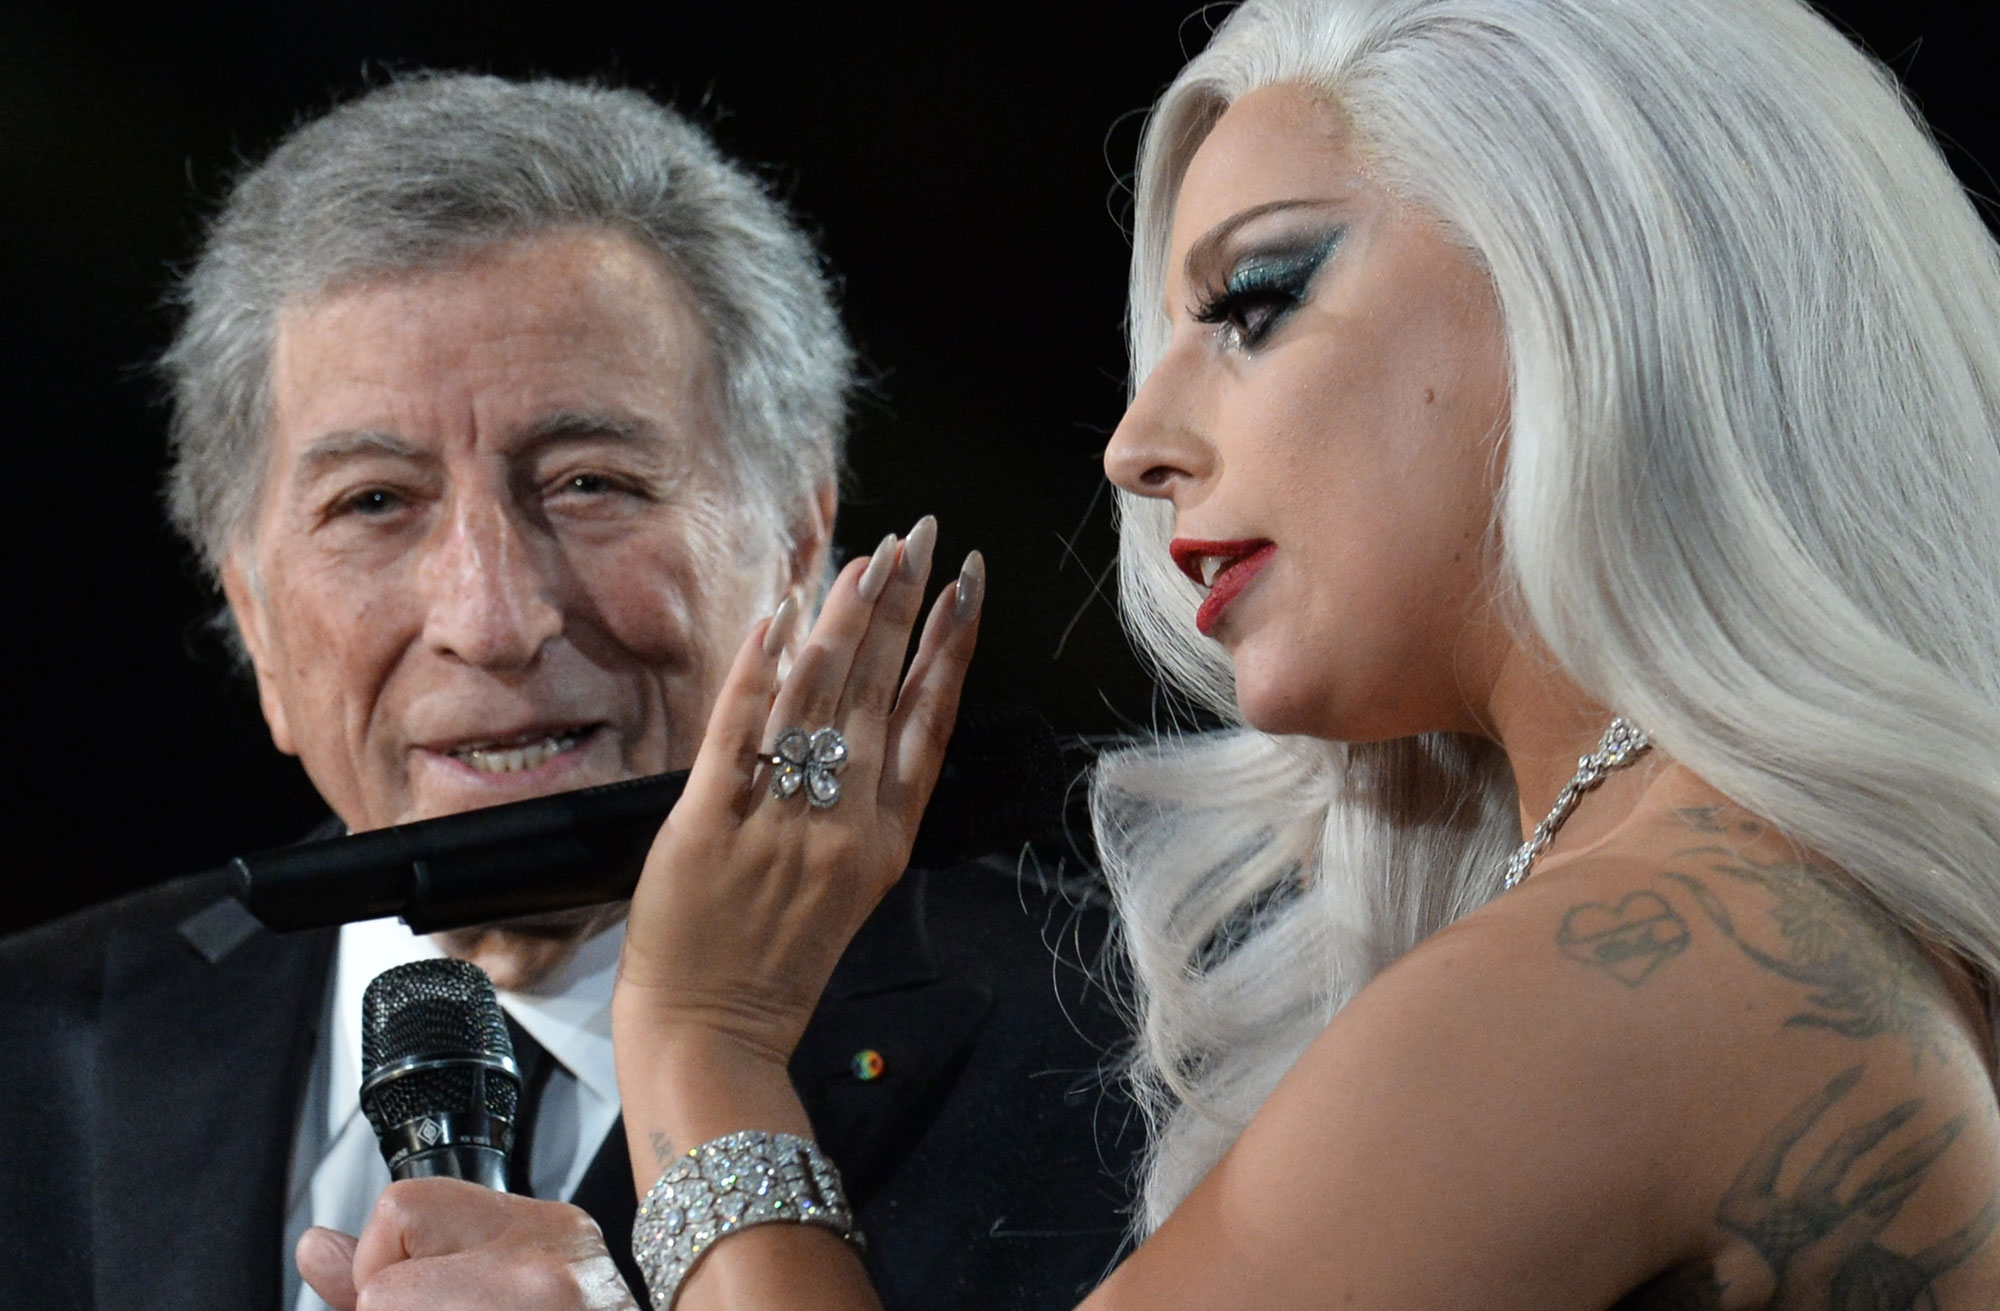 Tony Bennett et Lady Gaga en duo (ici à Los Angeles le 08.02.2015).